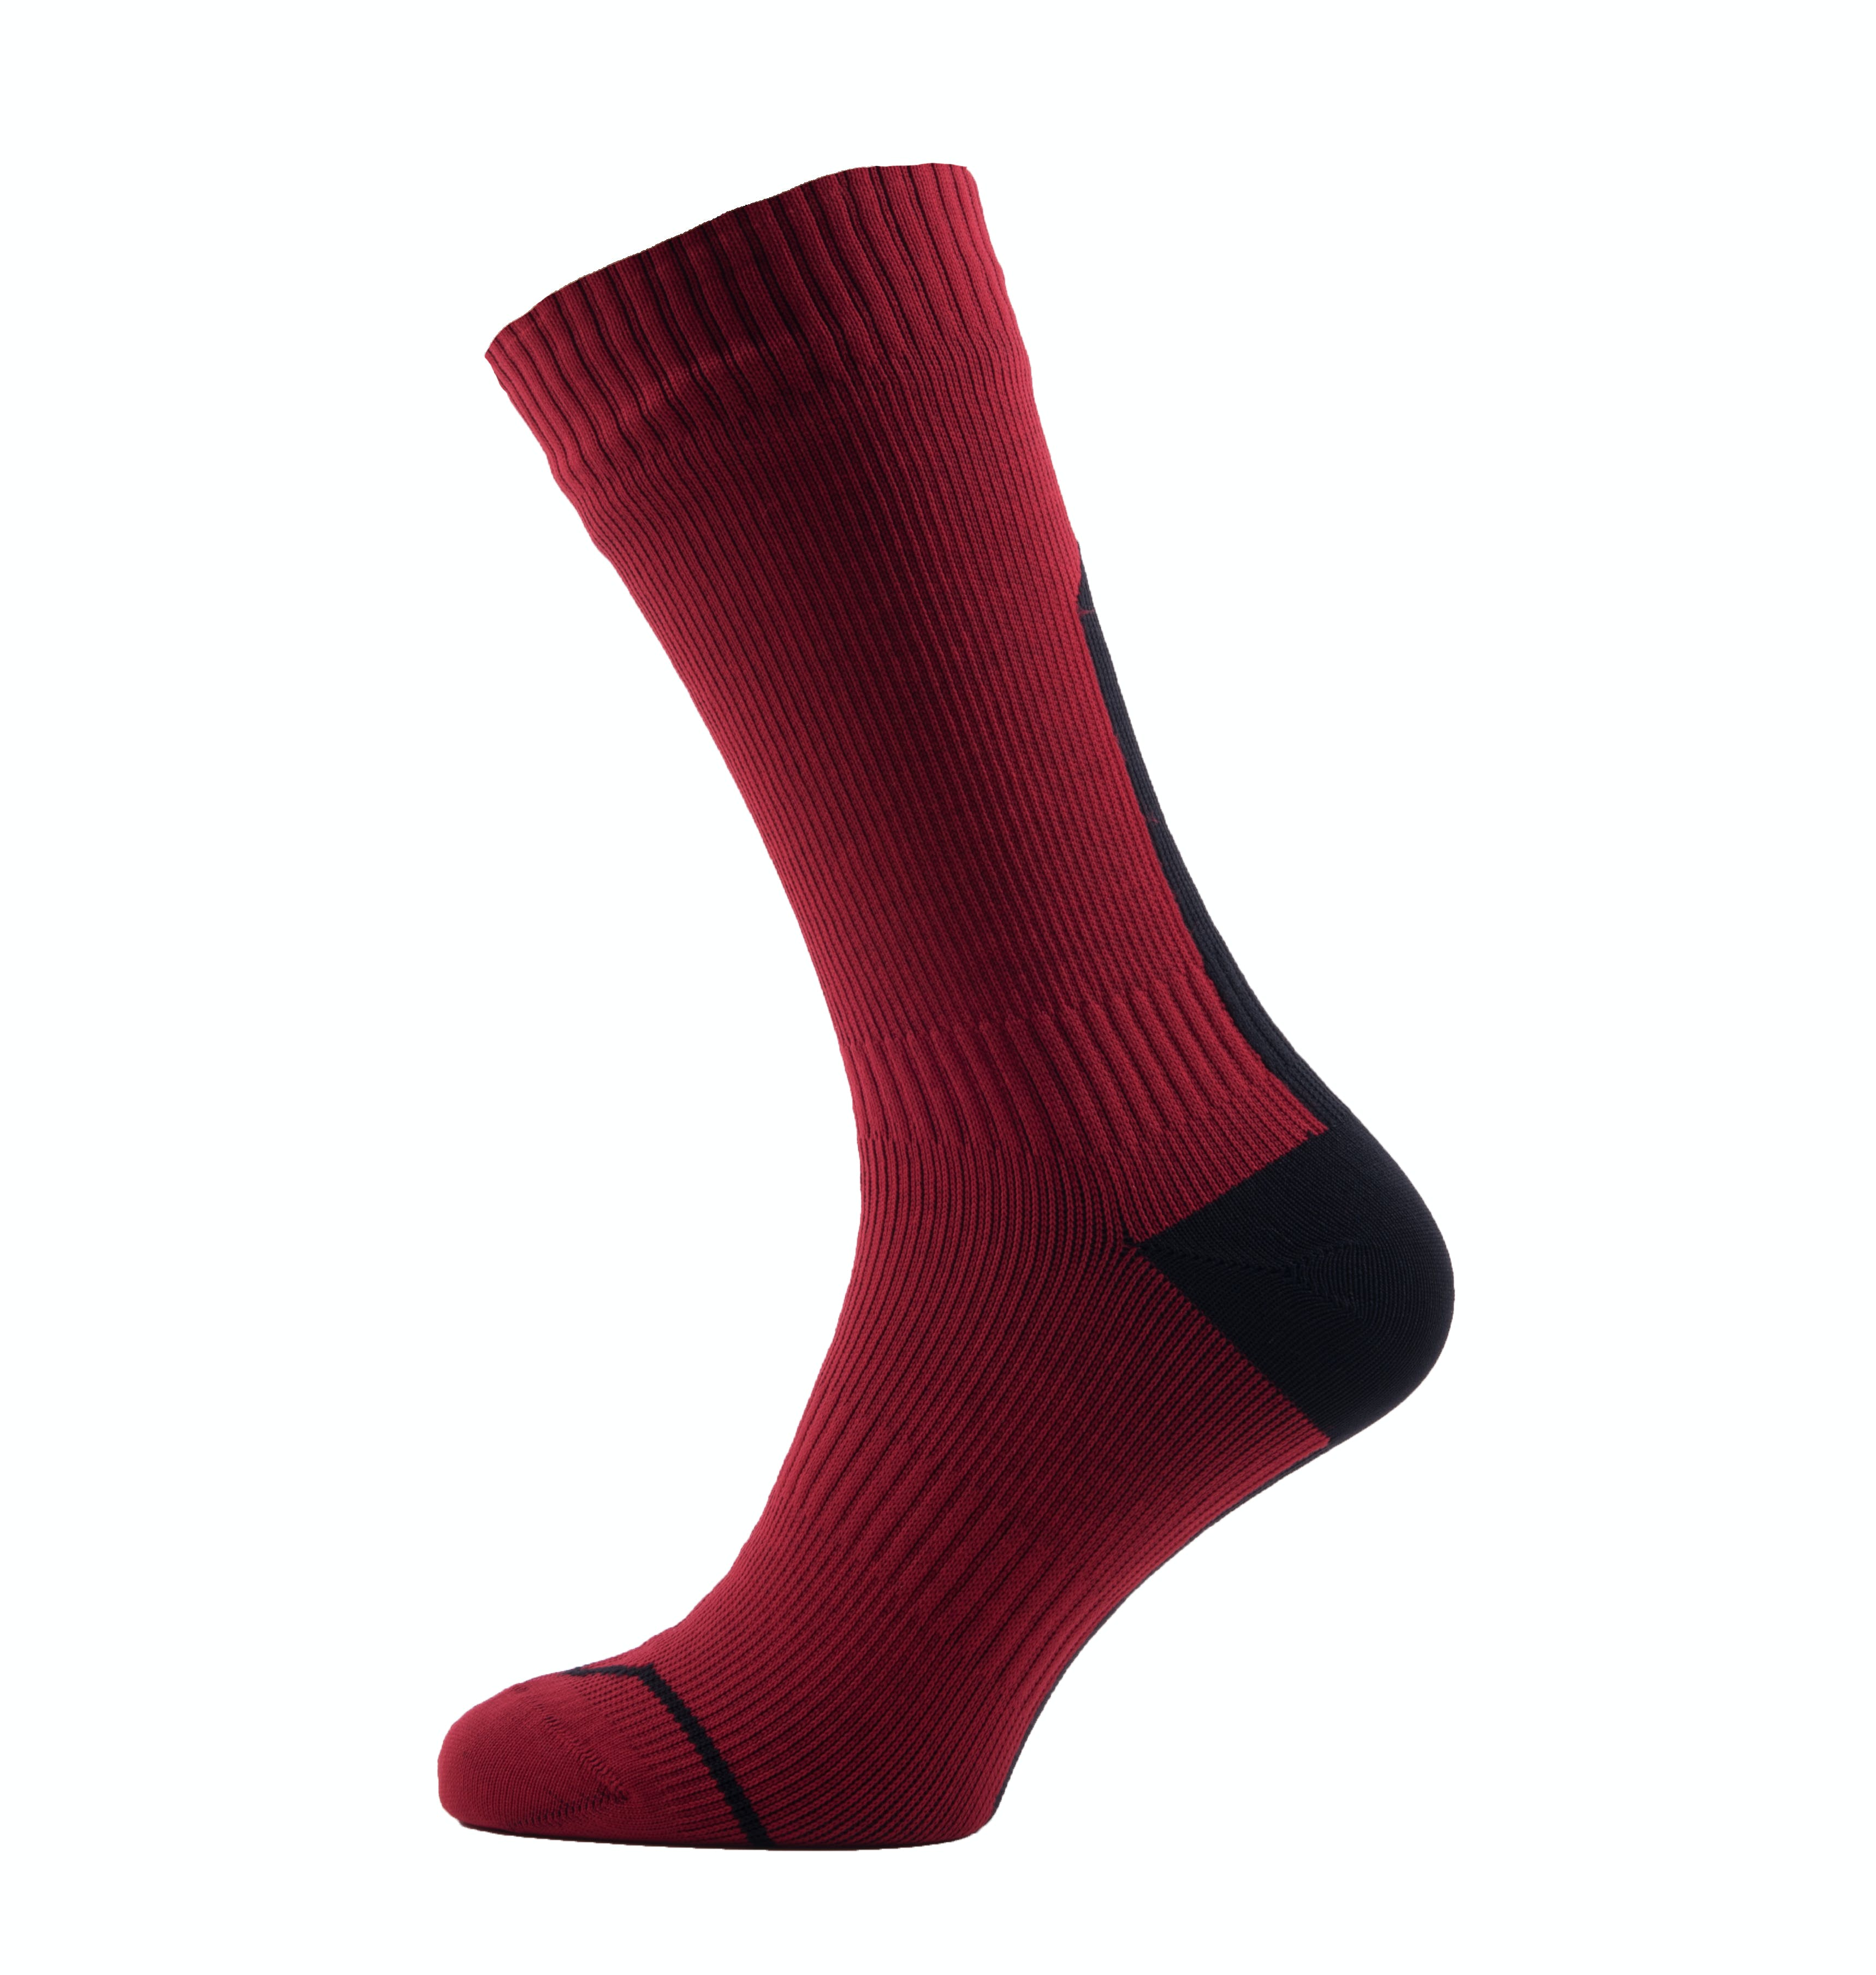 Waterproof Road Thin Mid Socks with Hydrostop